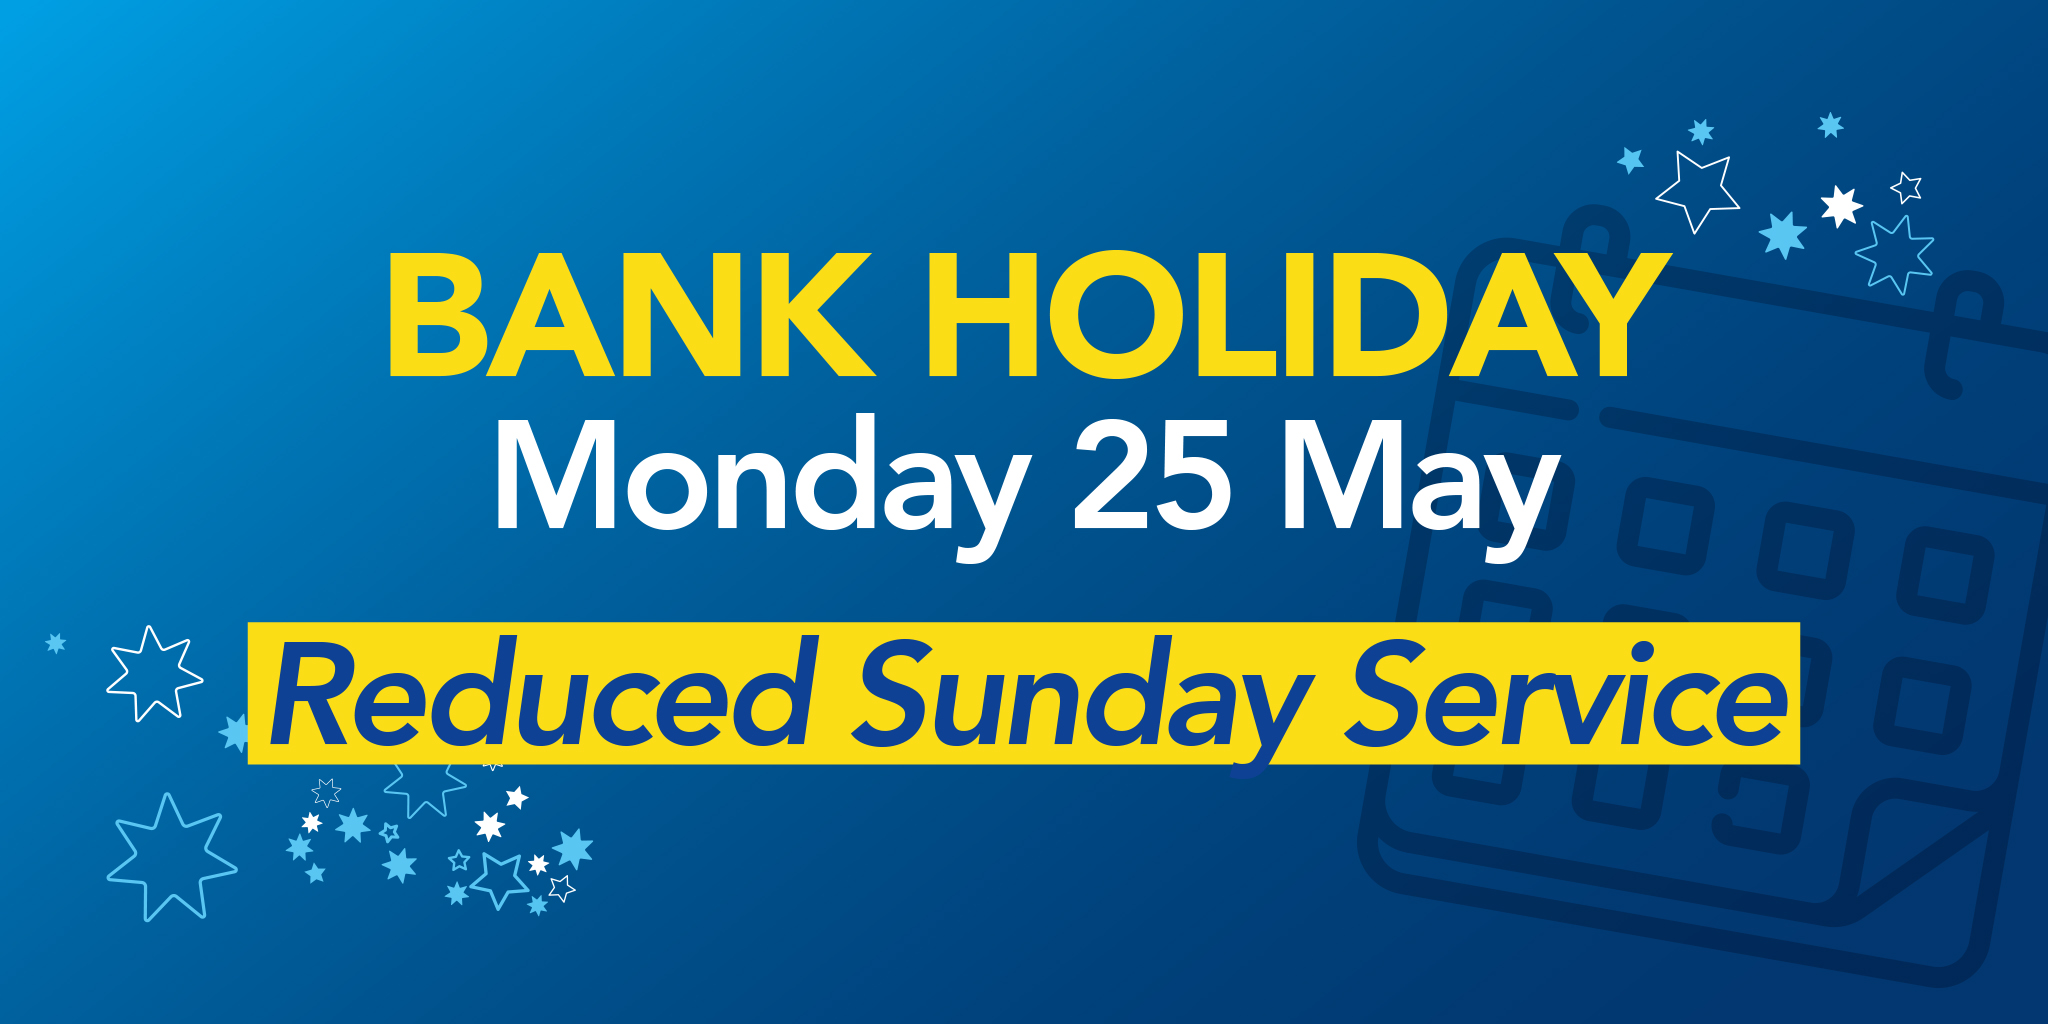 We will be running a Sunday service on Monday 25th May, the late May Bank Holiday.